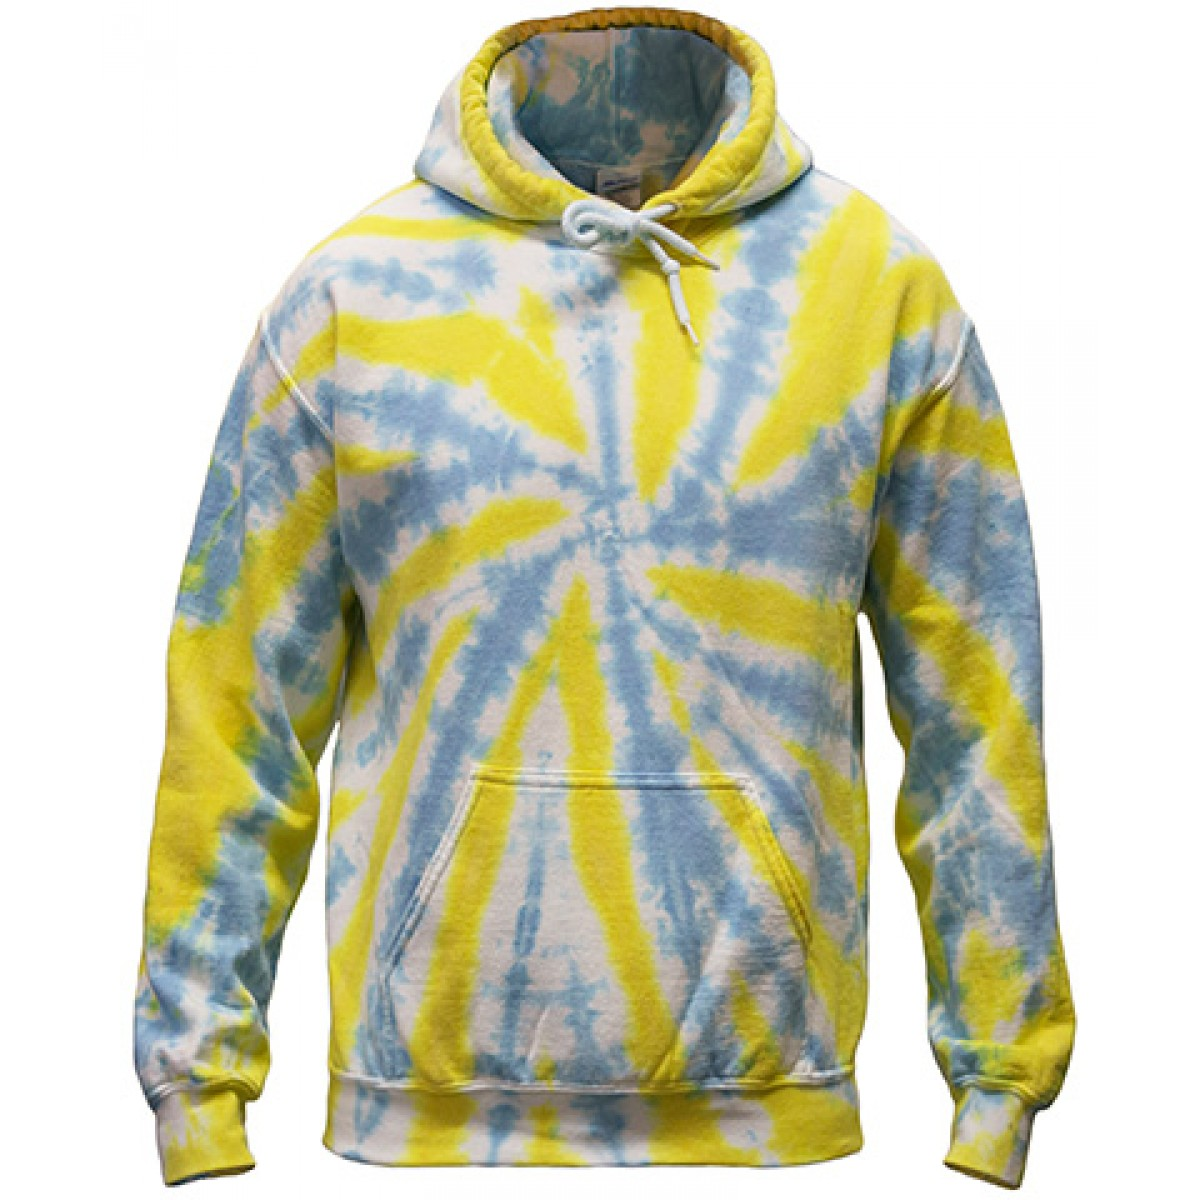 Tie-Dye Pullover Hooded Sweatshirt-Blue/Yellow-L